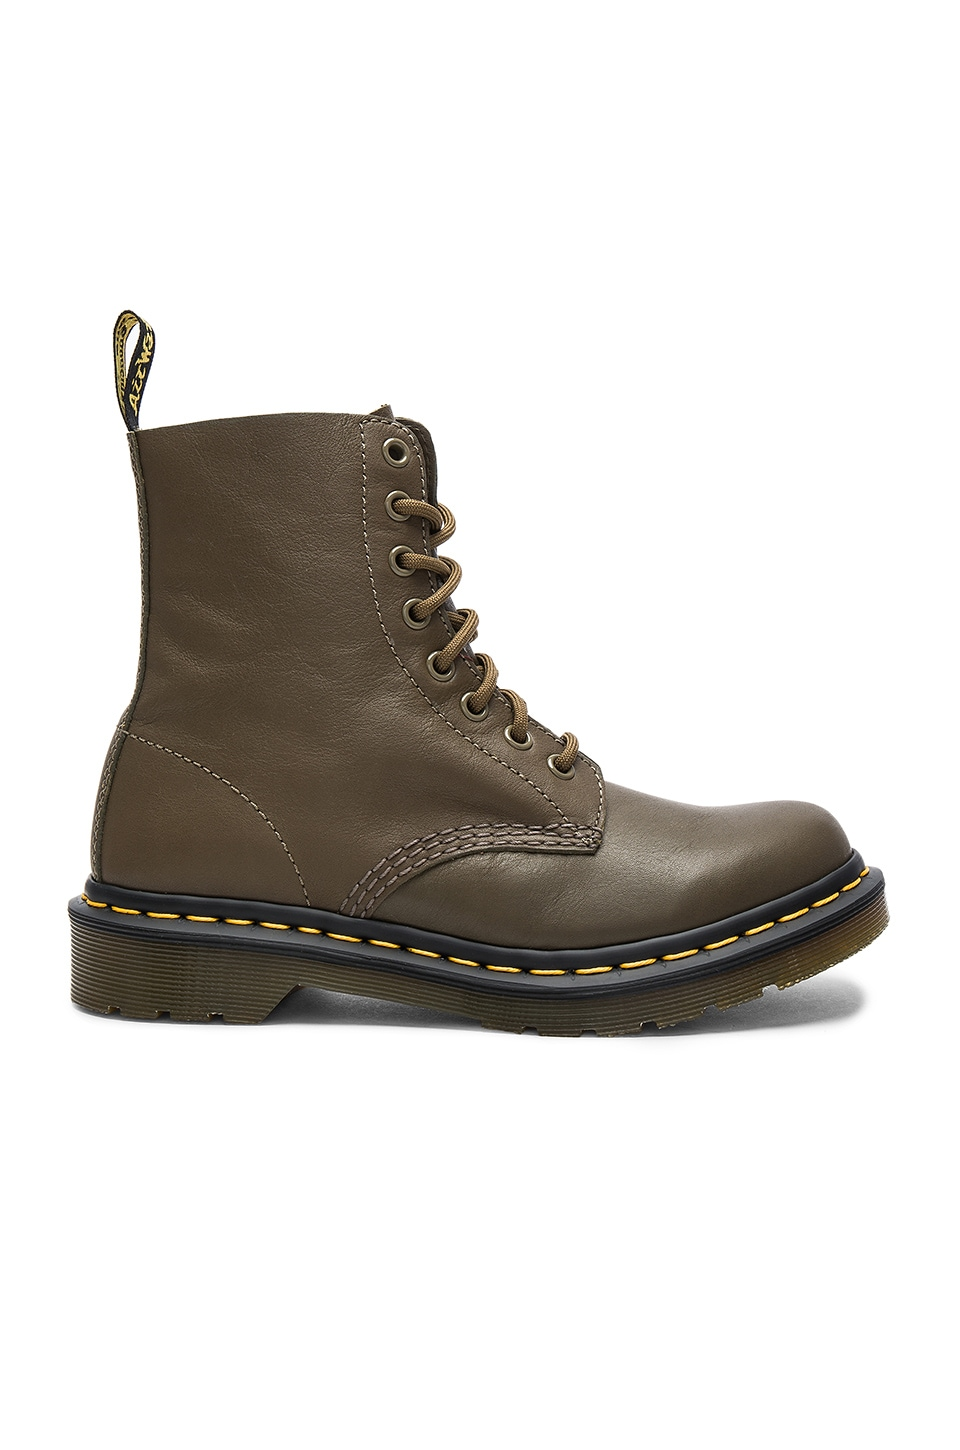 Dr. Martens Pascal 8 Eye Boots in Grenade Green